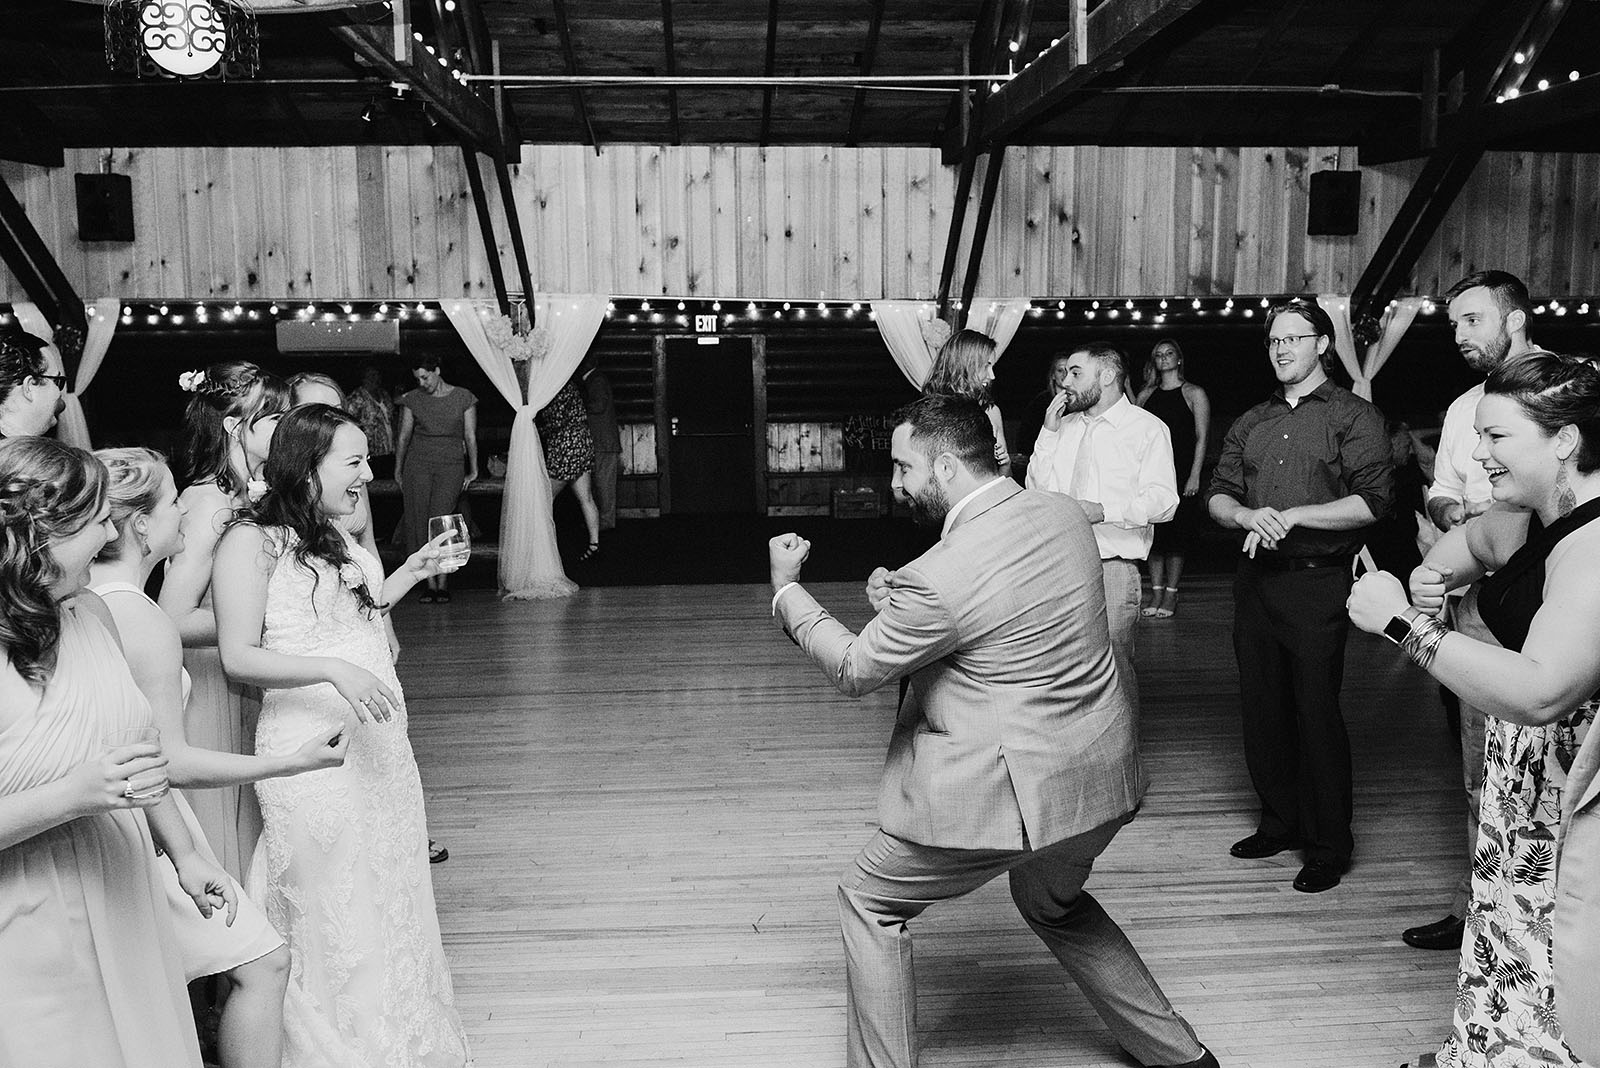 Bride and Groom dueling on the dance floor at their Cedarville Lodge Wedding reception